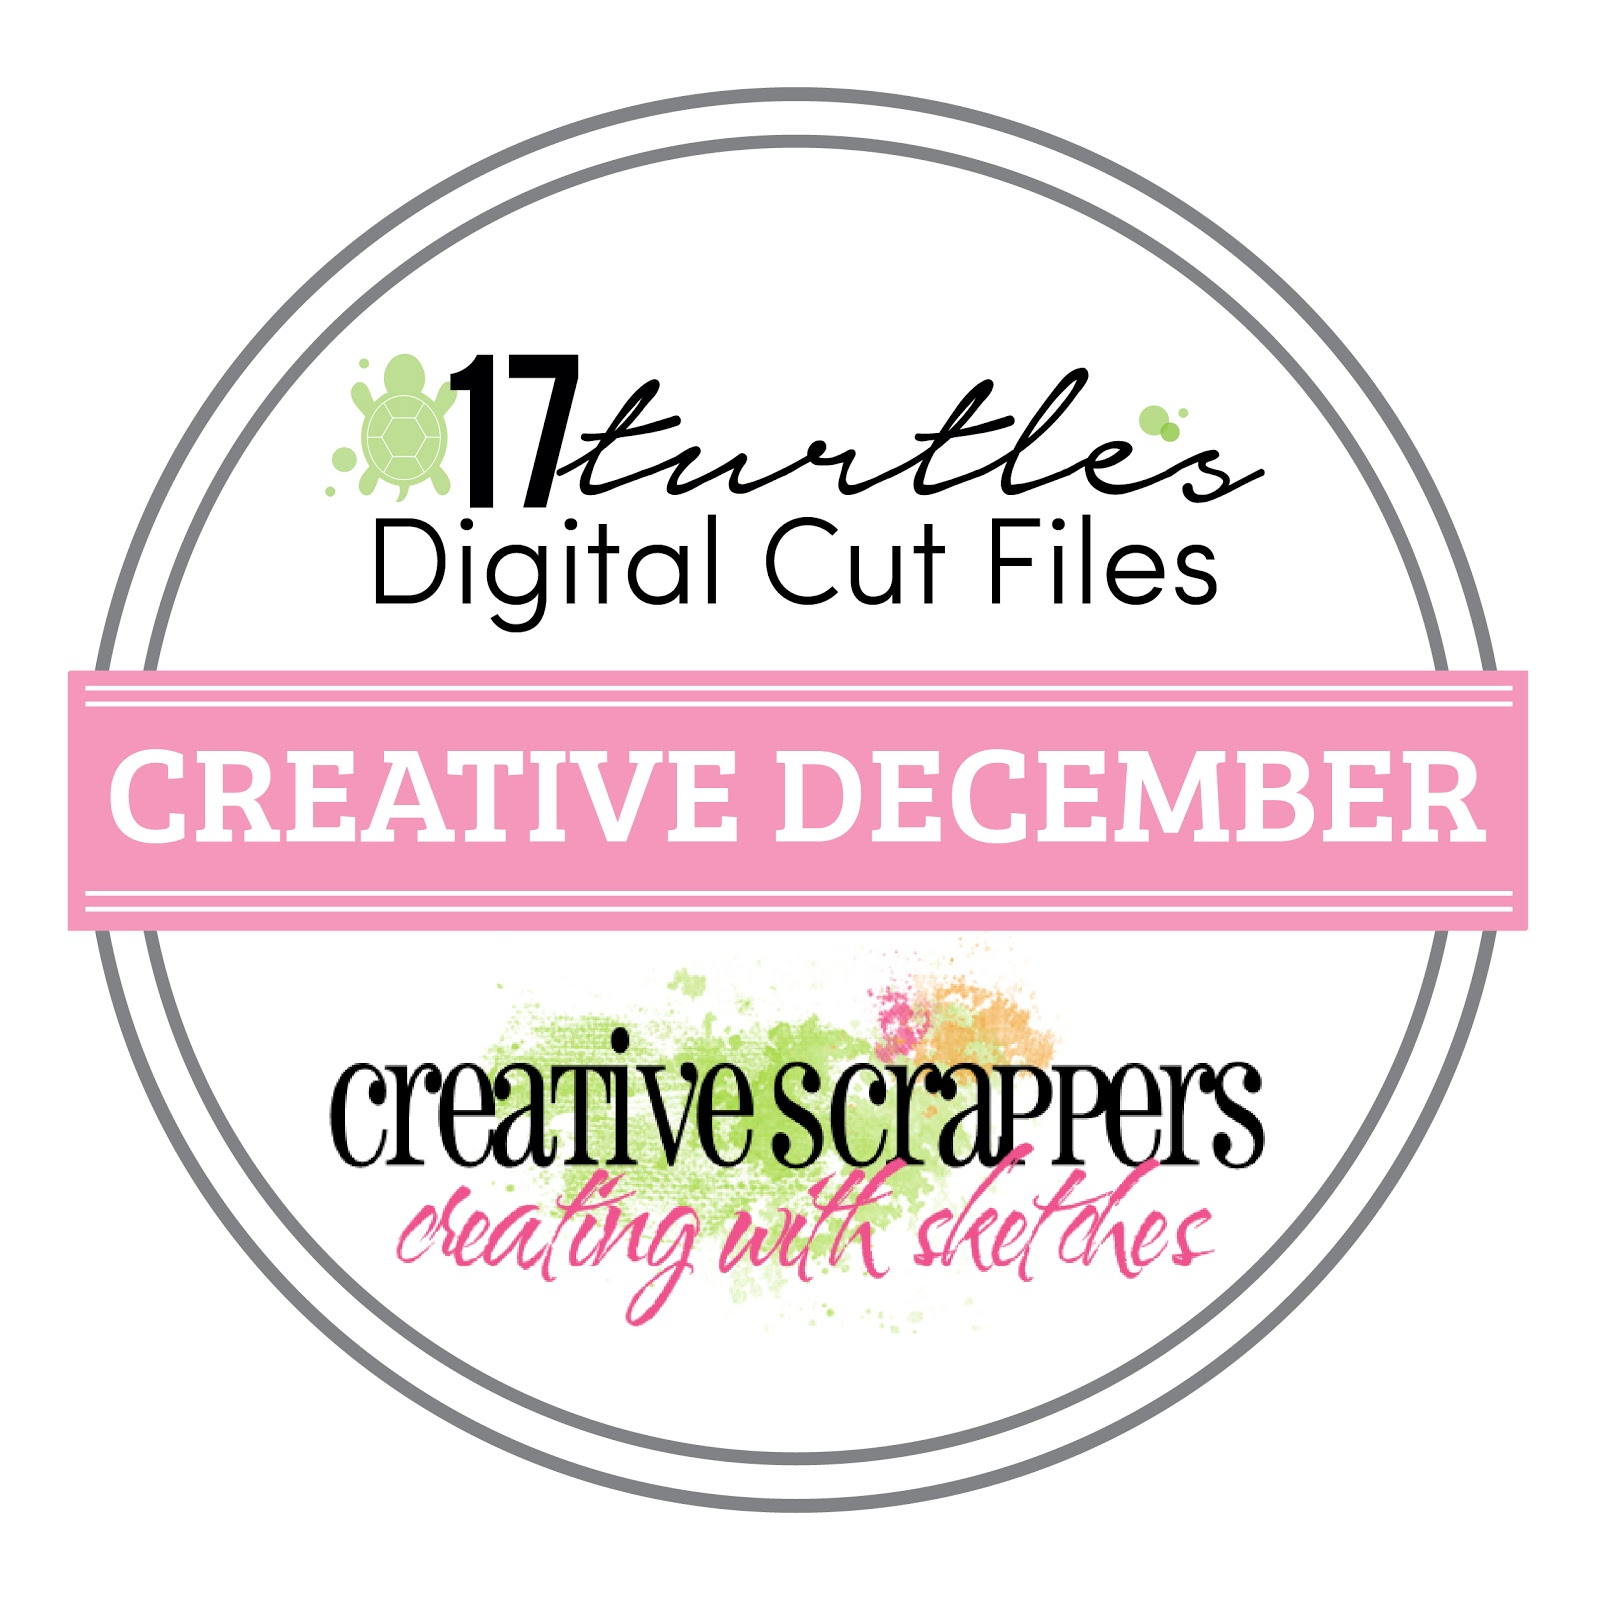 17turtles and Creative Scrappers Creative December